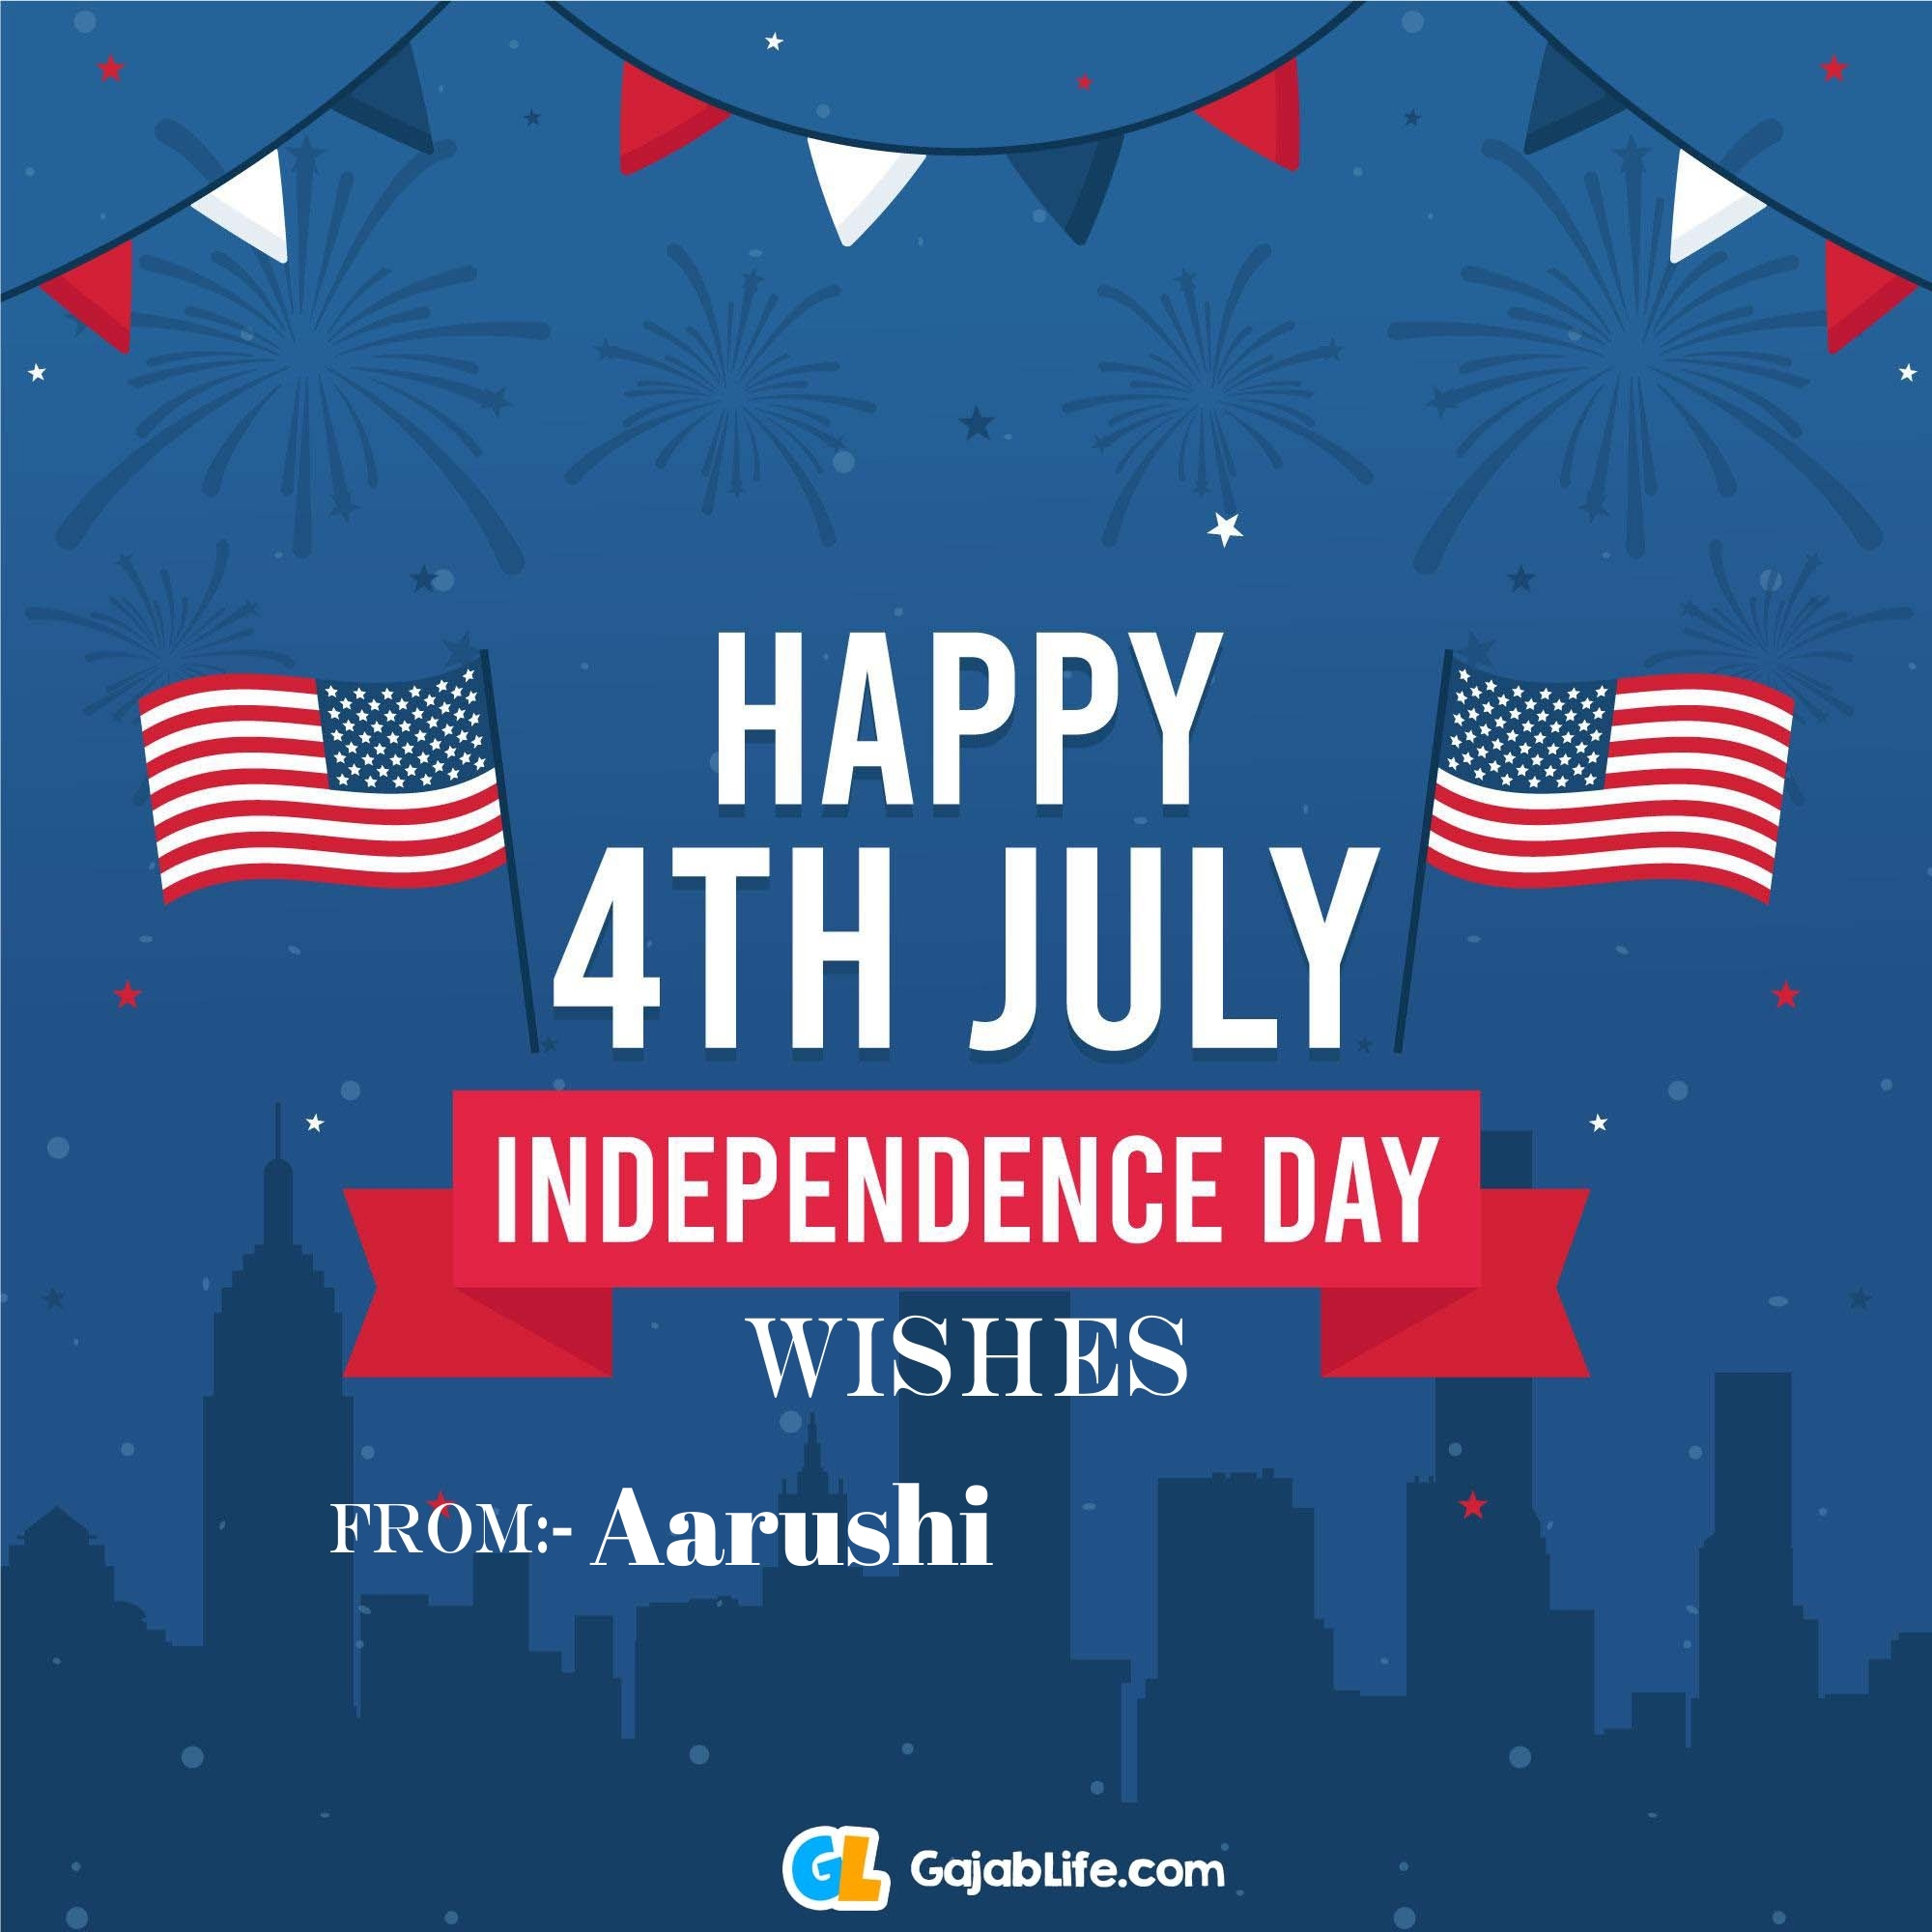 Aarushi happy independence day united states of america images